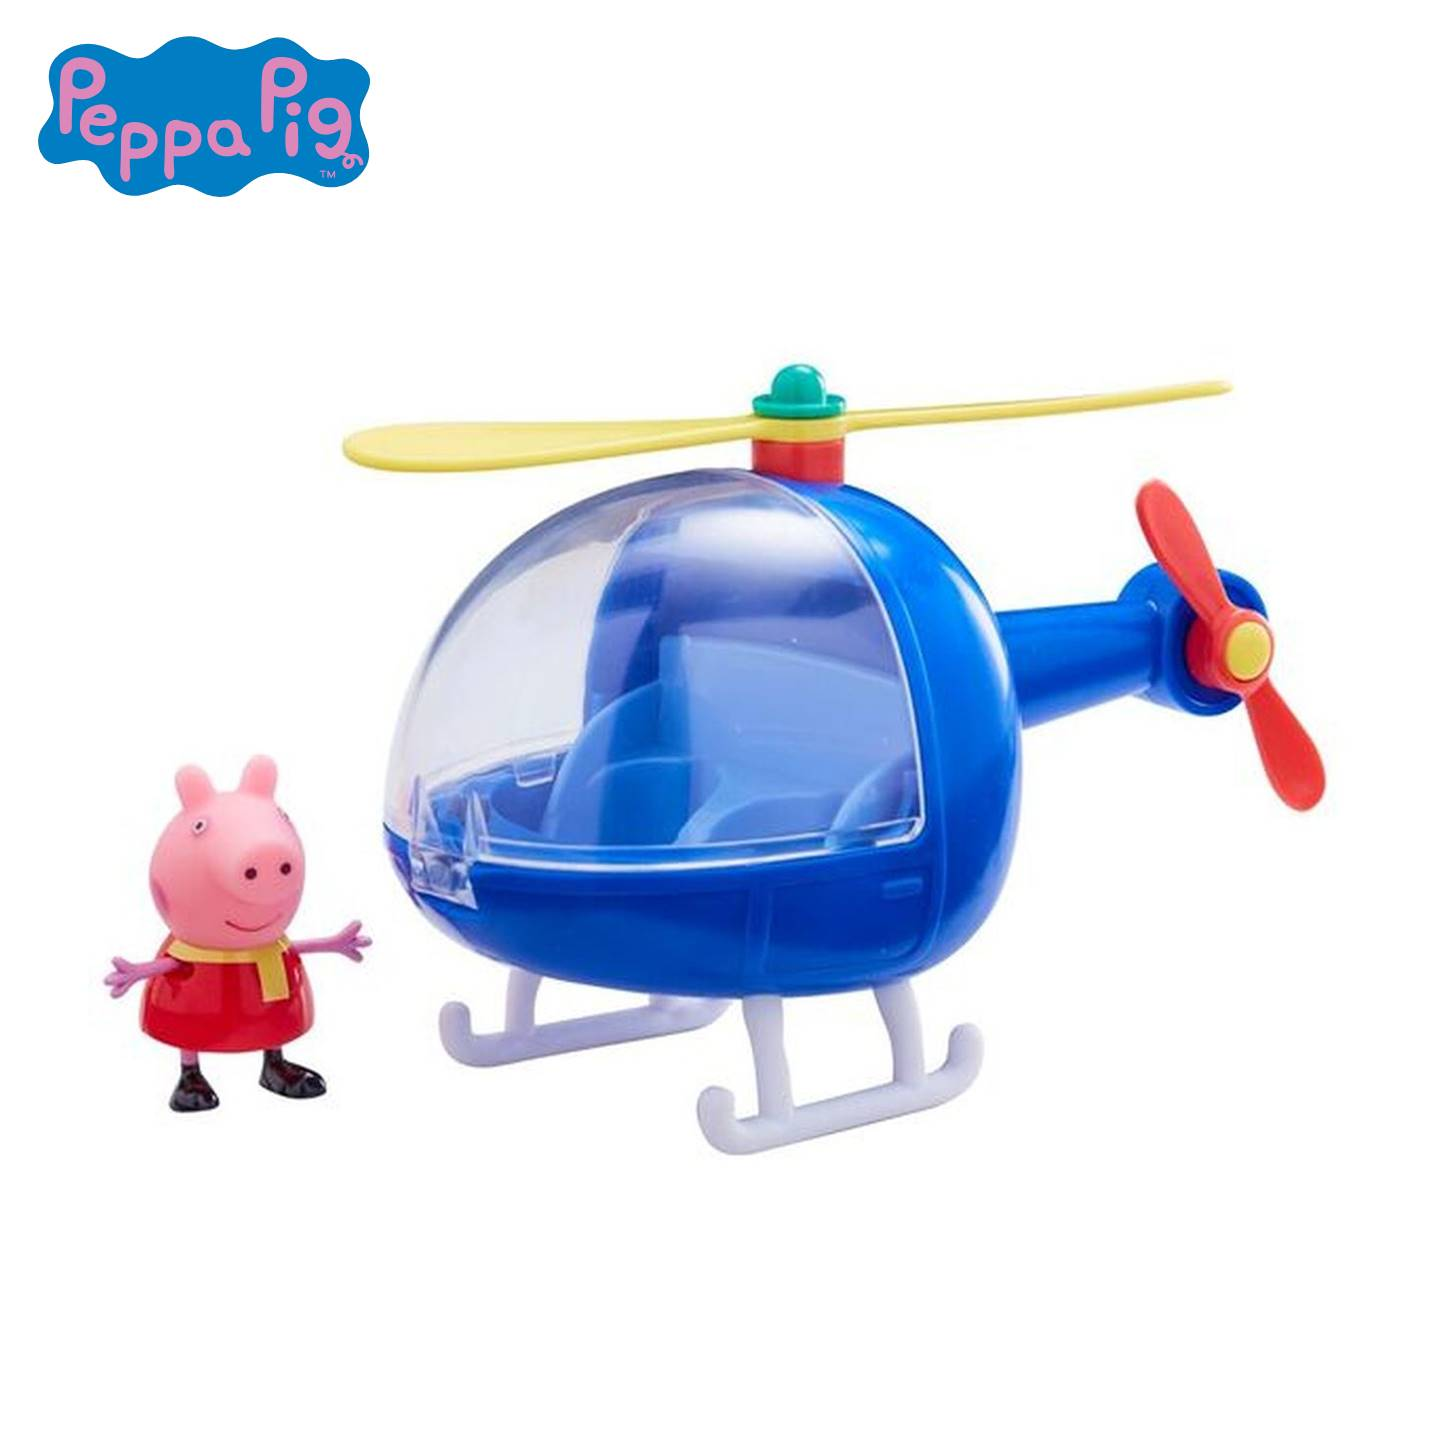 PP120638800000 Peppa Pig'S Vehicle Helicopter (2)